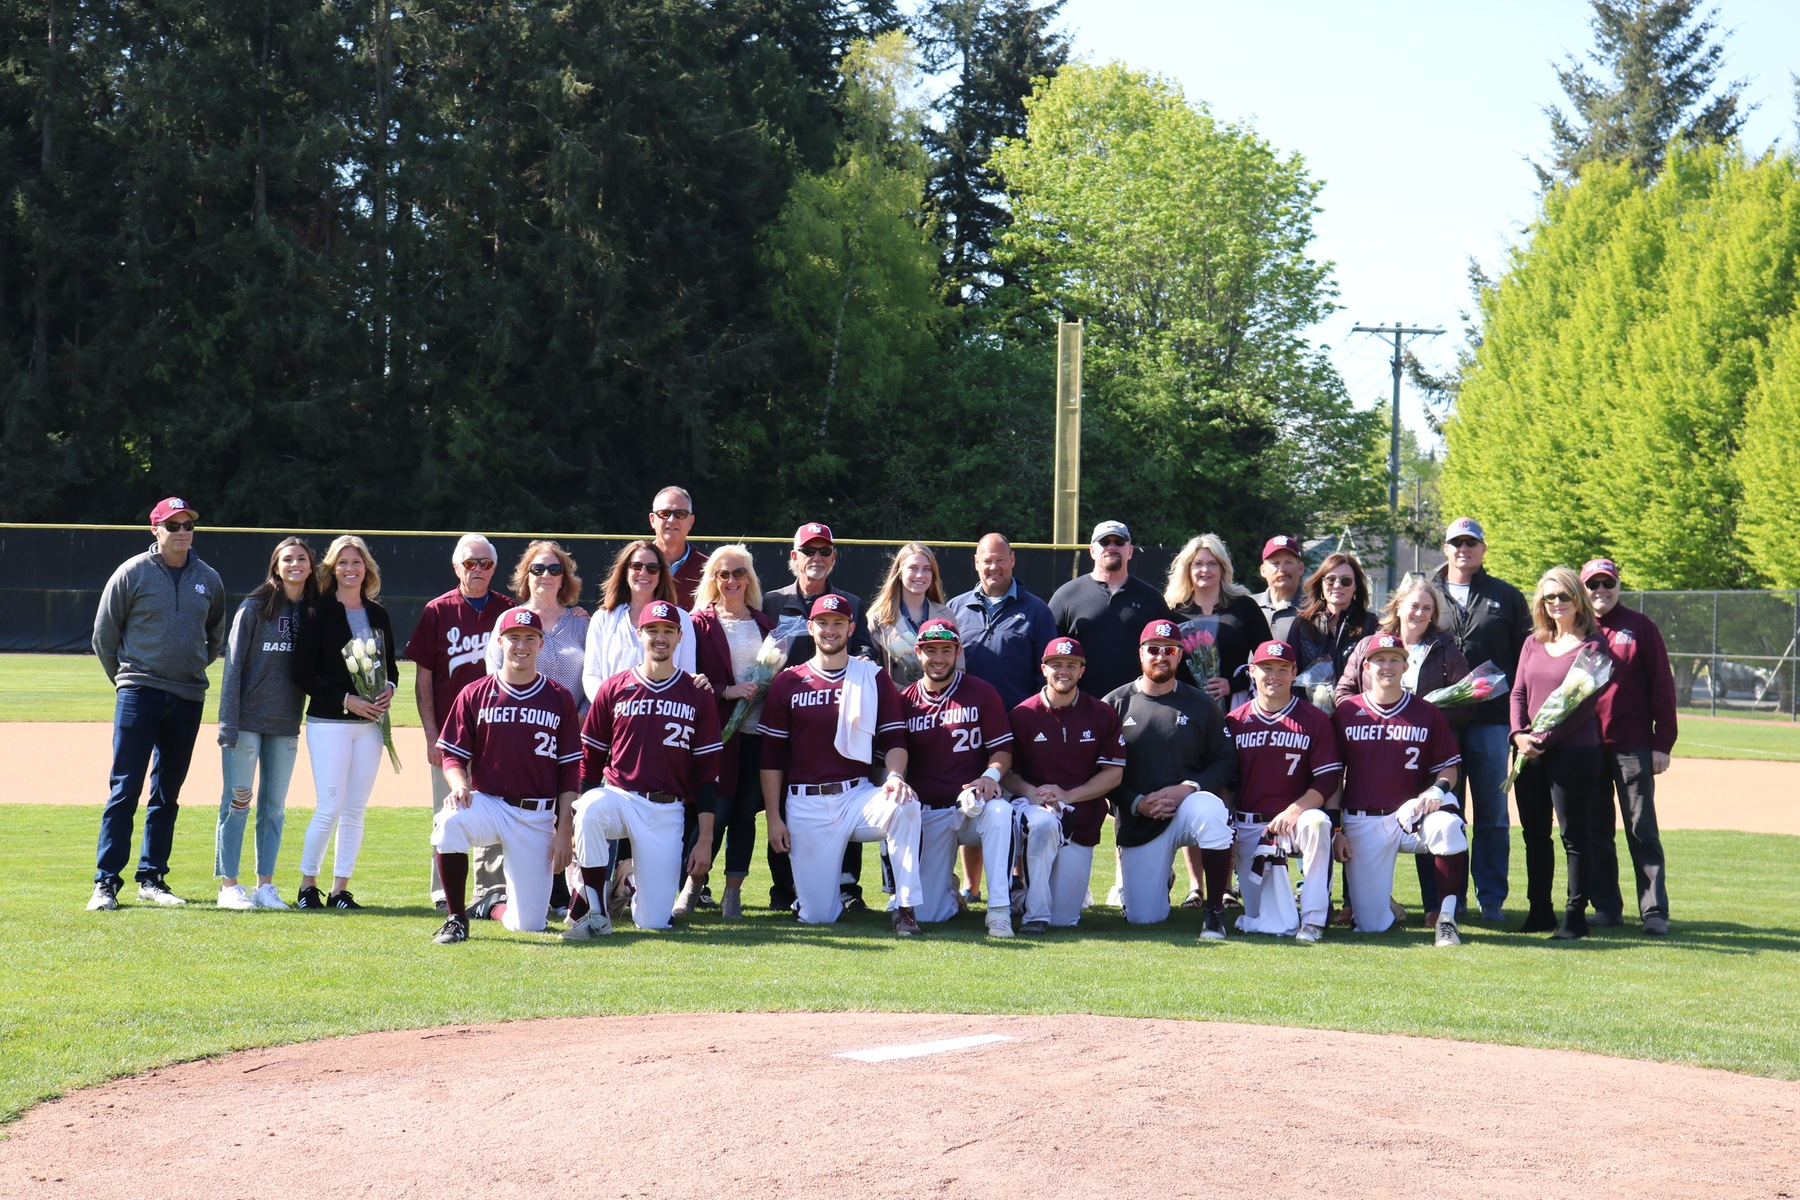 Puget Sound downed by the Whits on Senior Day